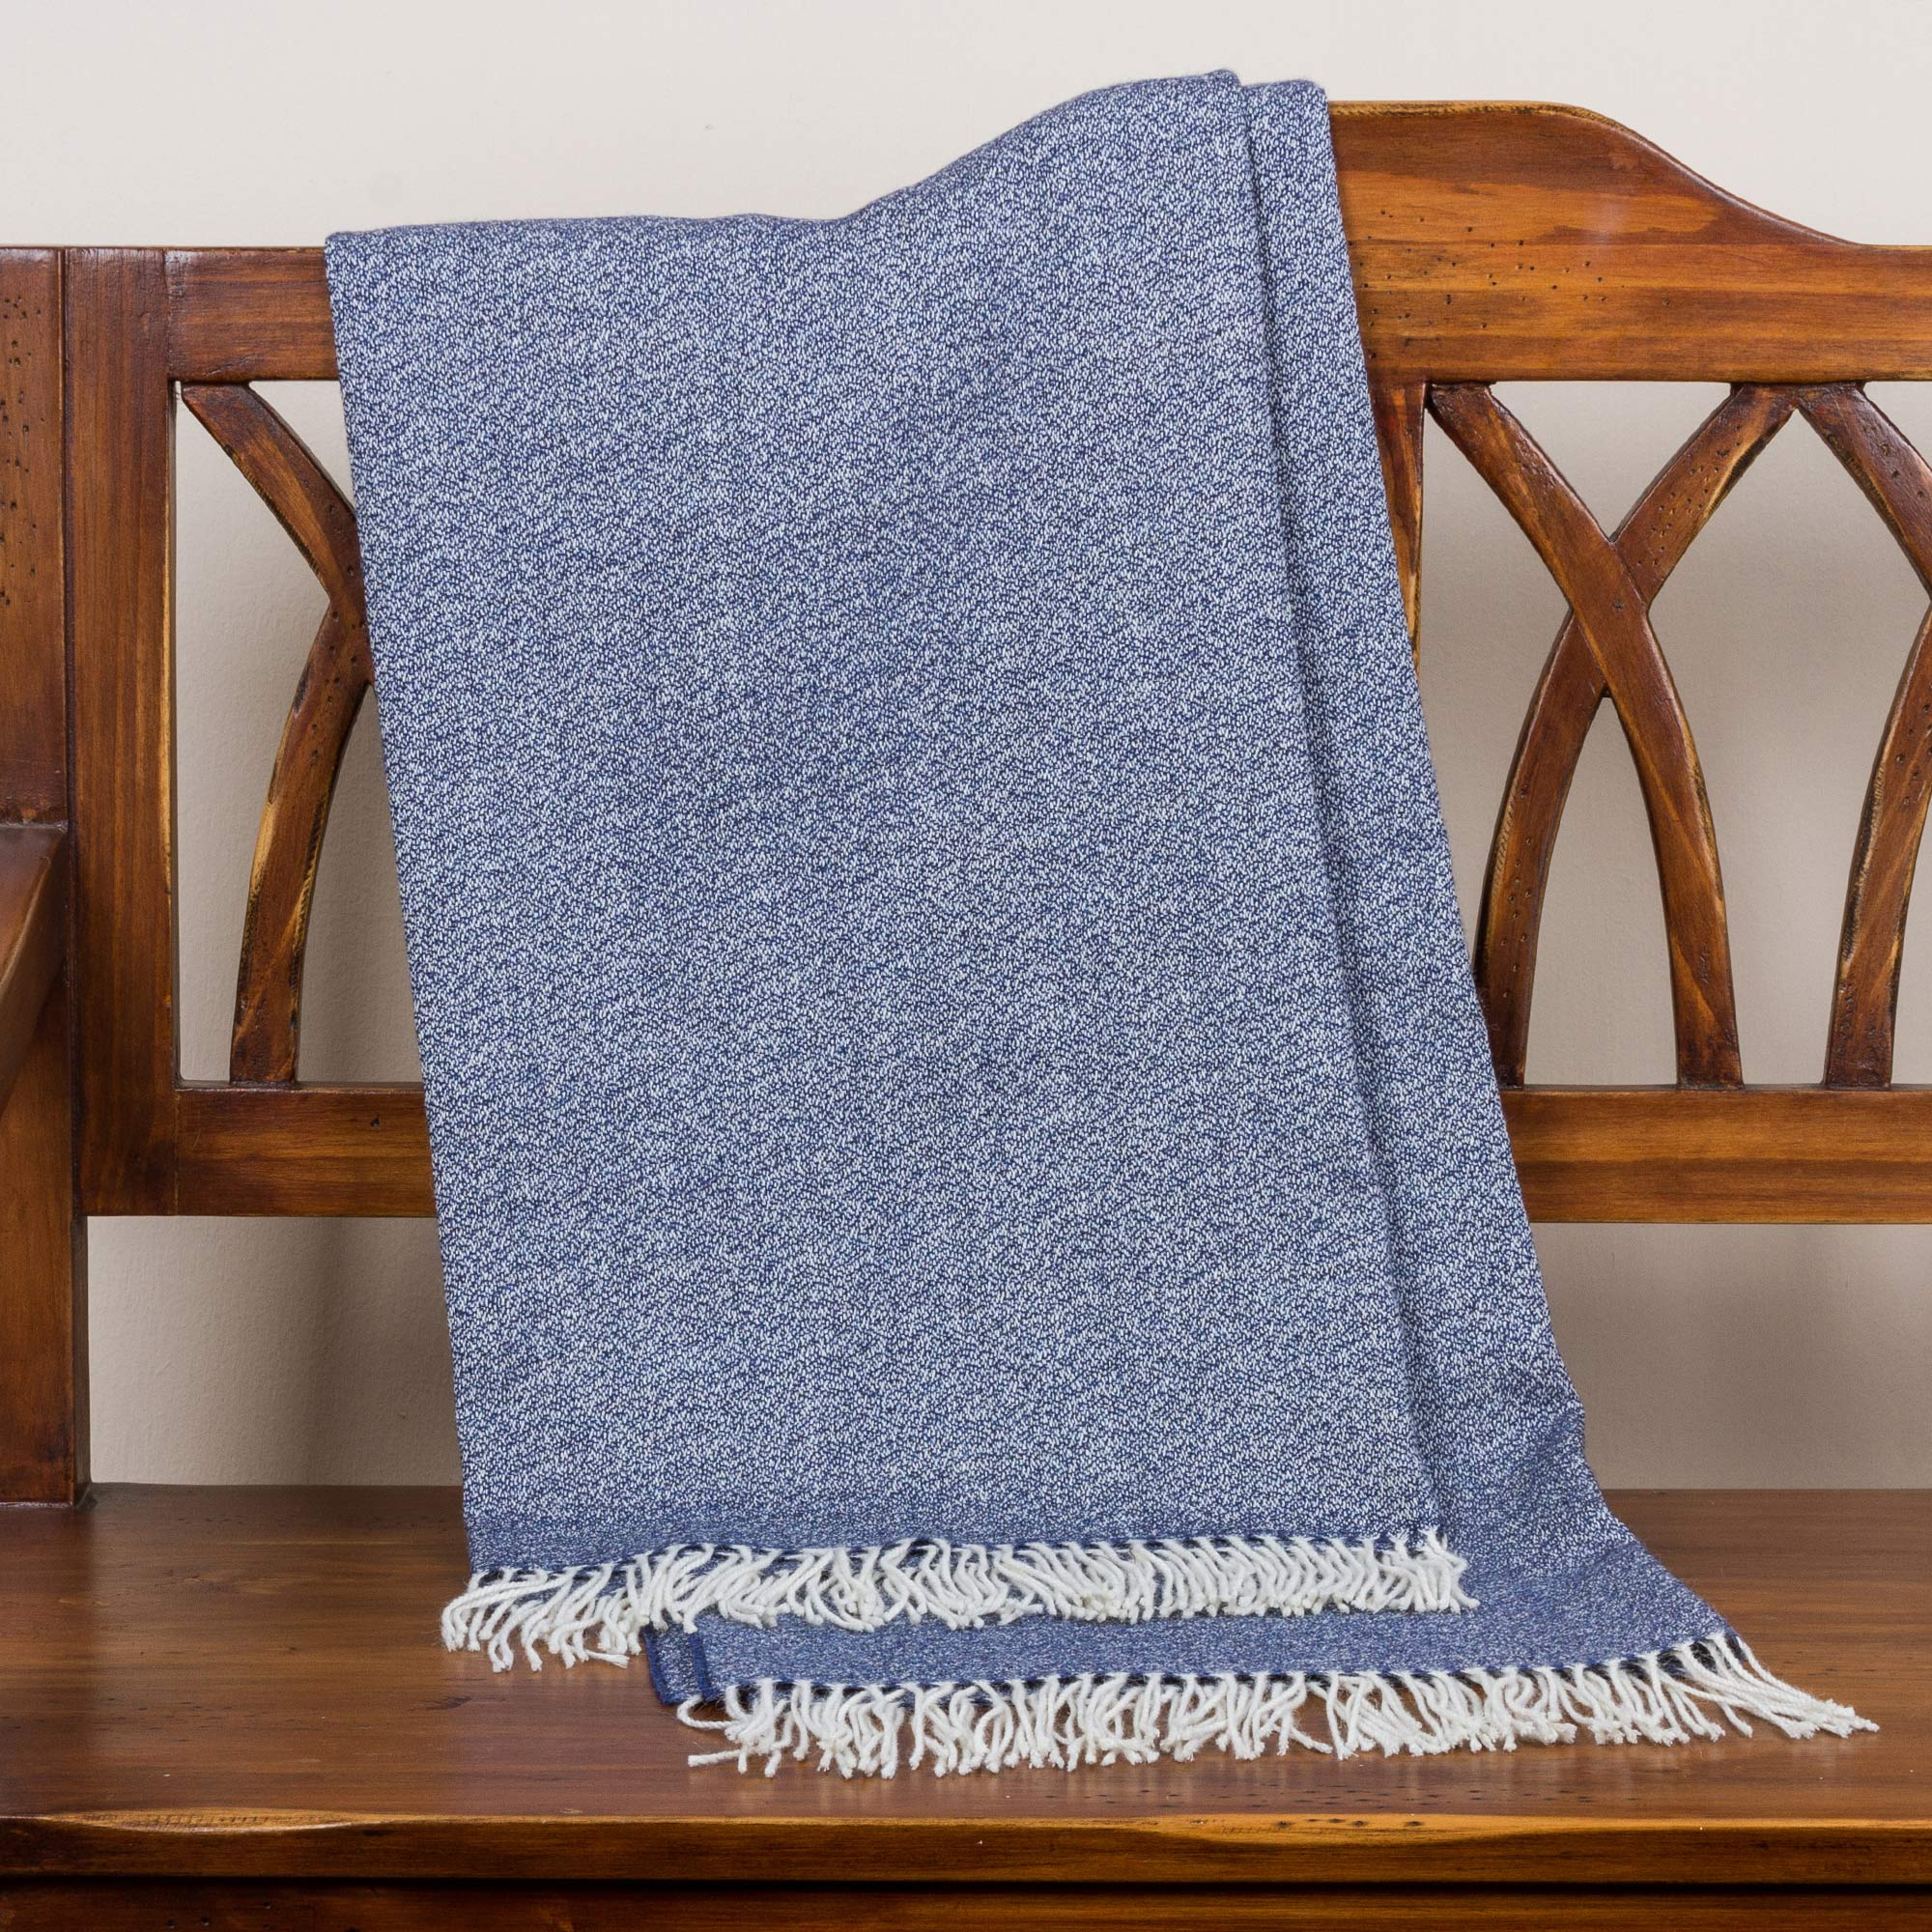 100% baby alpaca throw, blanket 'Indigo Love' blue fringe border